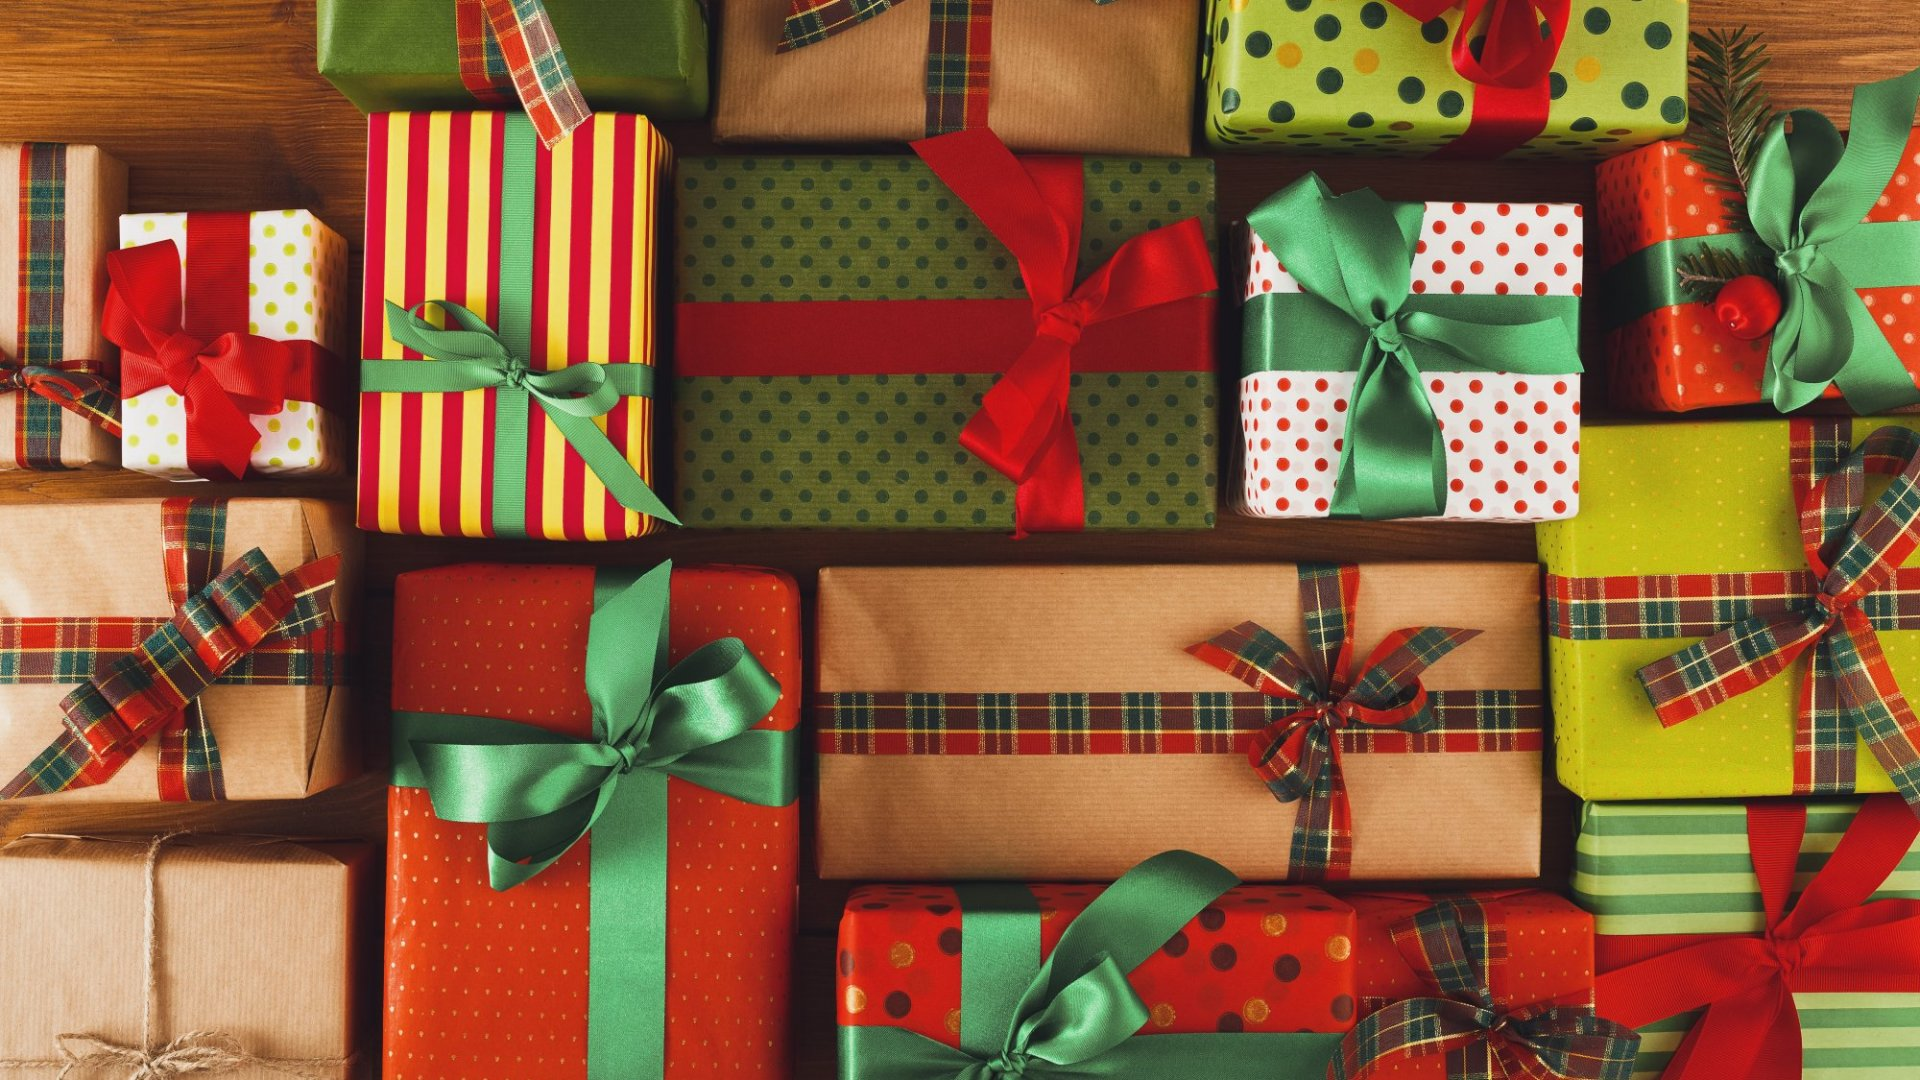 15 Great 2019 Productivity Holiday Presents You Can Give (to Yourself, Even)